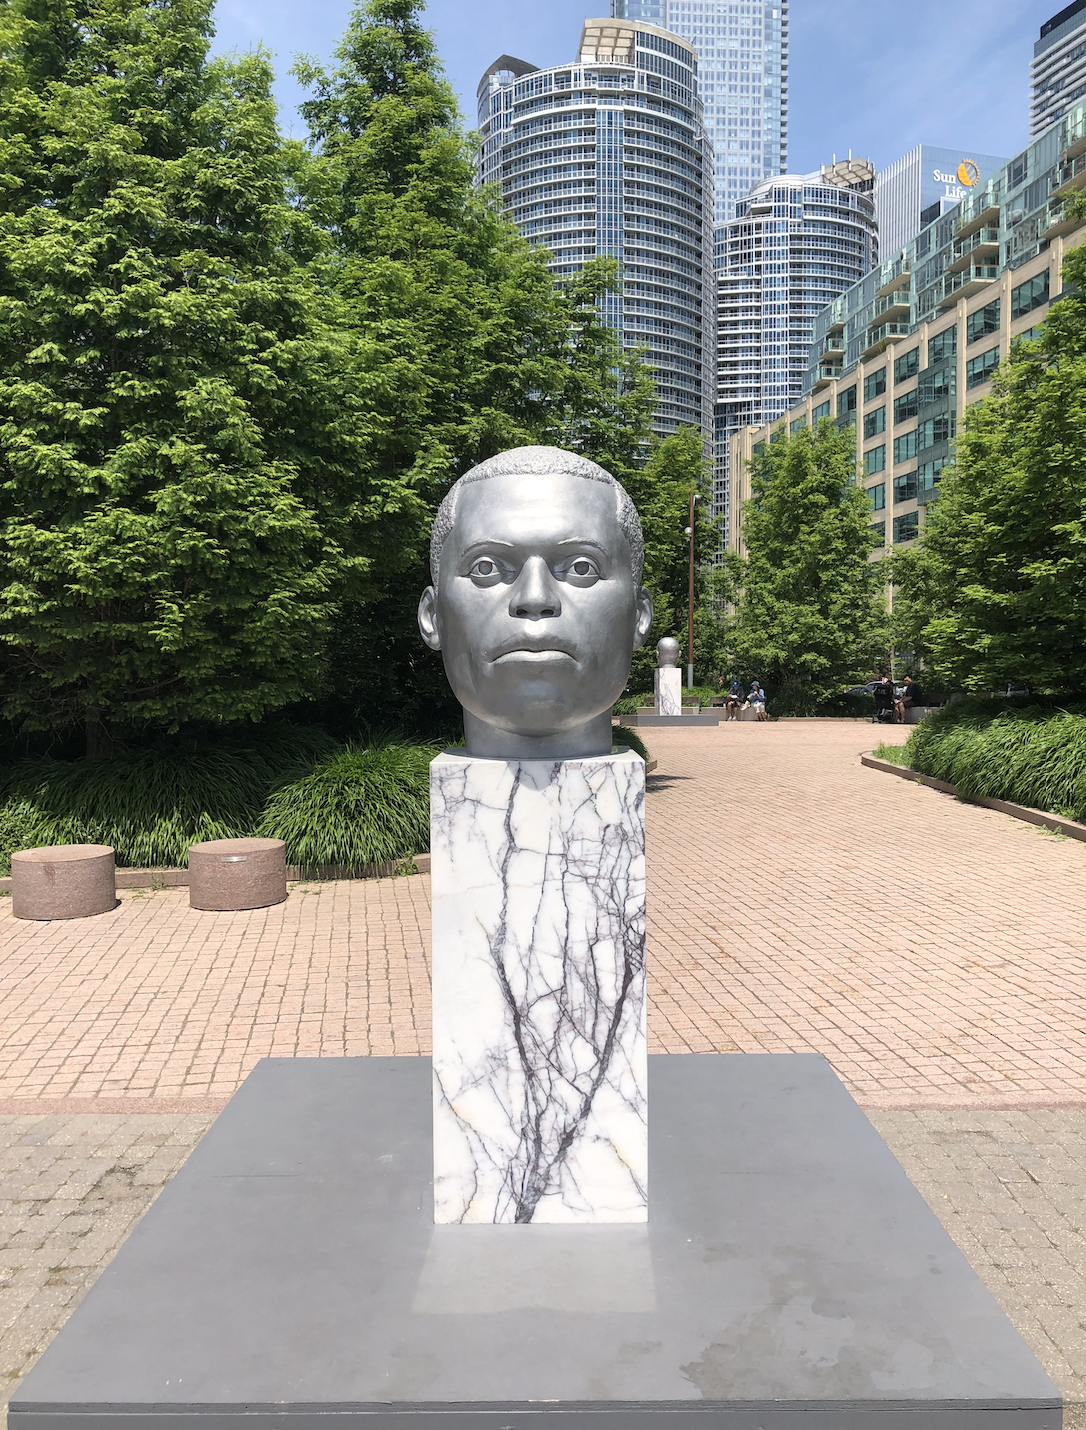 - Thomas J Price, Ordinary Men | The Power Plant, TorontoJune 22 - September 2, 2019The exhibition at The Power Plant, Price's first in Canada, features a series of sculptures in varying sizes. Inside the gallery, a newly commissioned work is presented alongside several smaller bronzes and photographs that challenge the erasure of black bodies within the traditions of classical sculpture.Curated by Justine Kohleal, RBC Curatorial Fellow